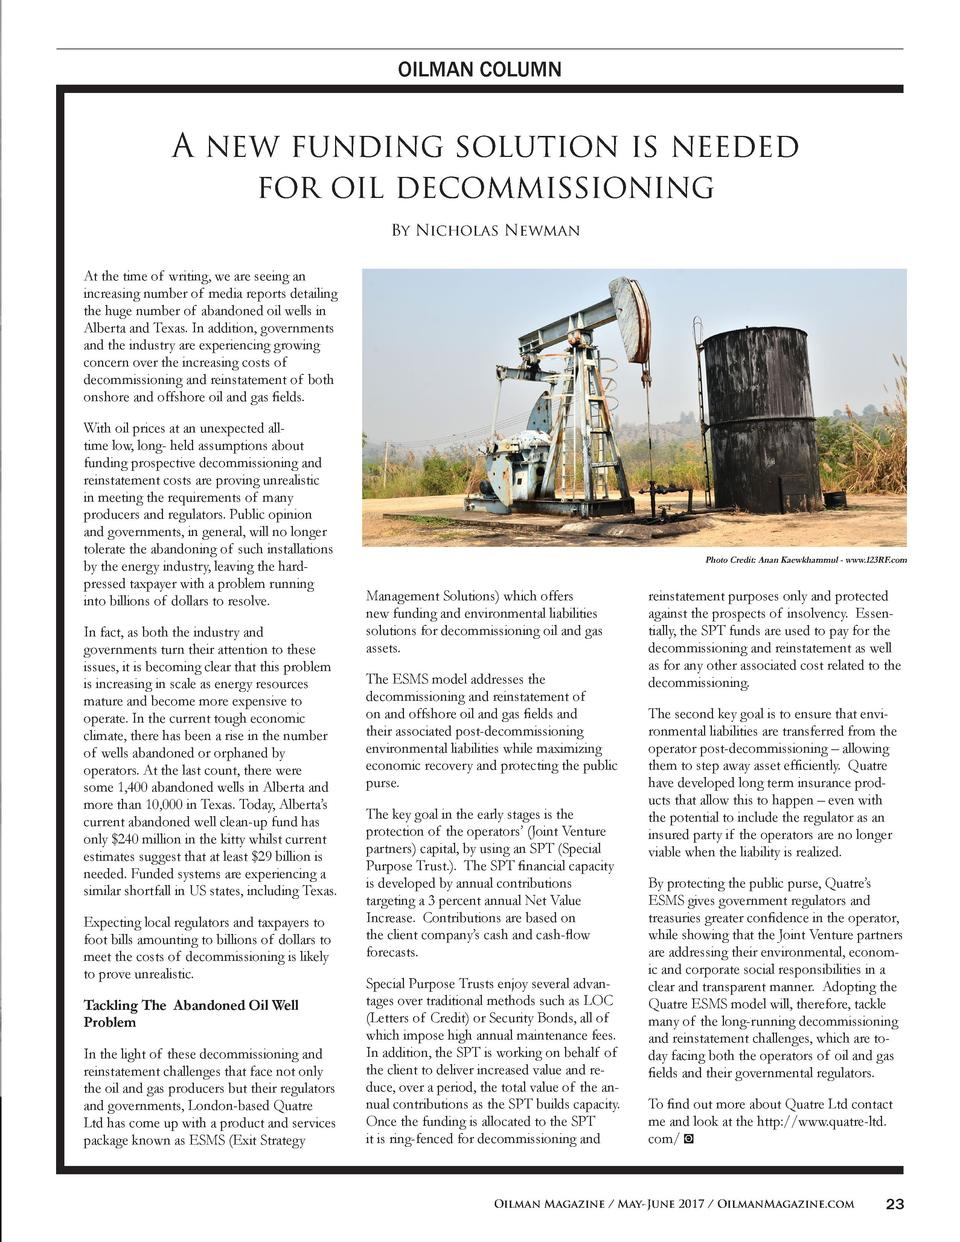 OILMAN COLUMN  A new funding solution is needed for oil decommissioning By Nicholas Newman At the time of writing, we are ...